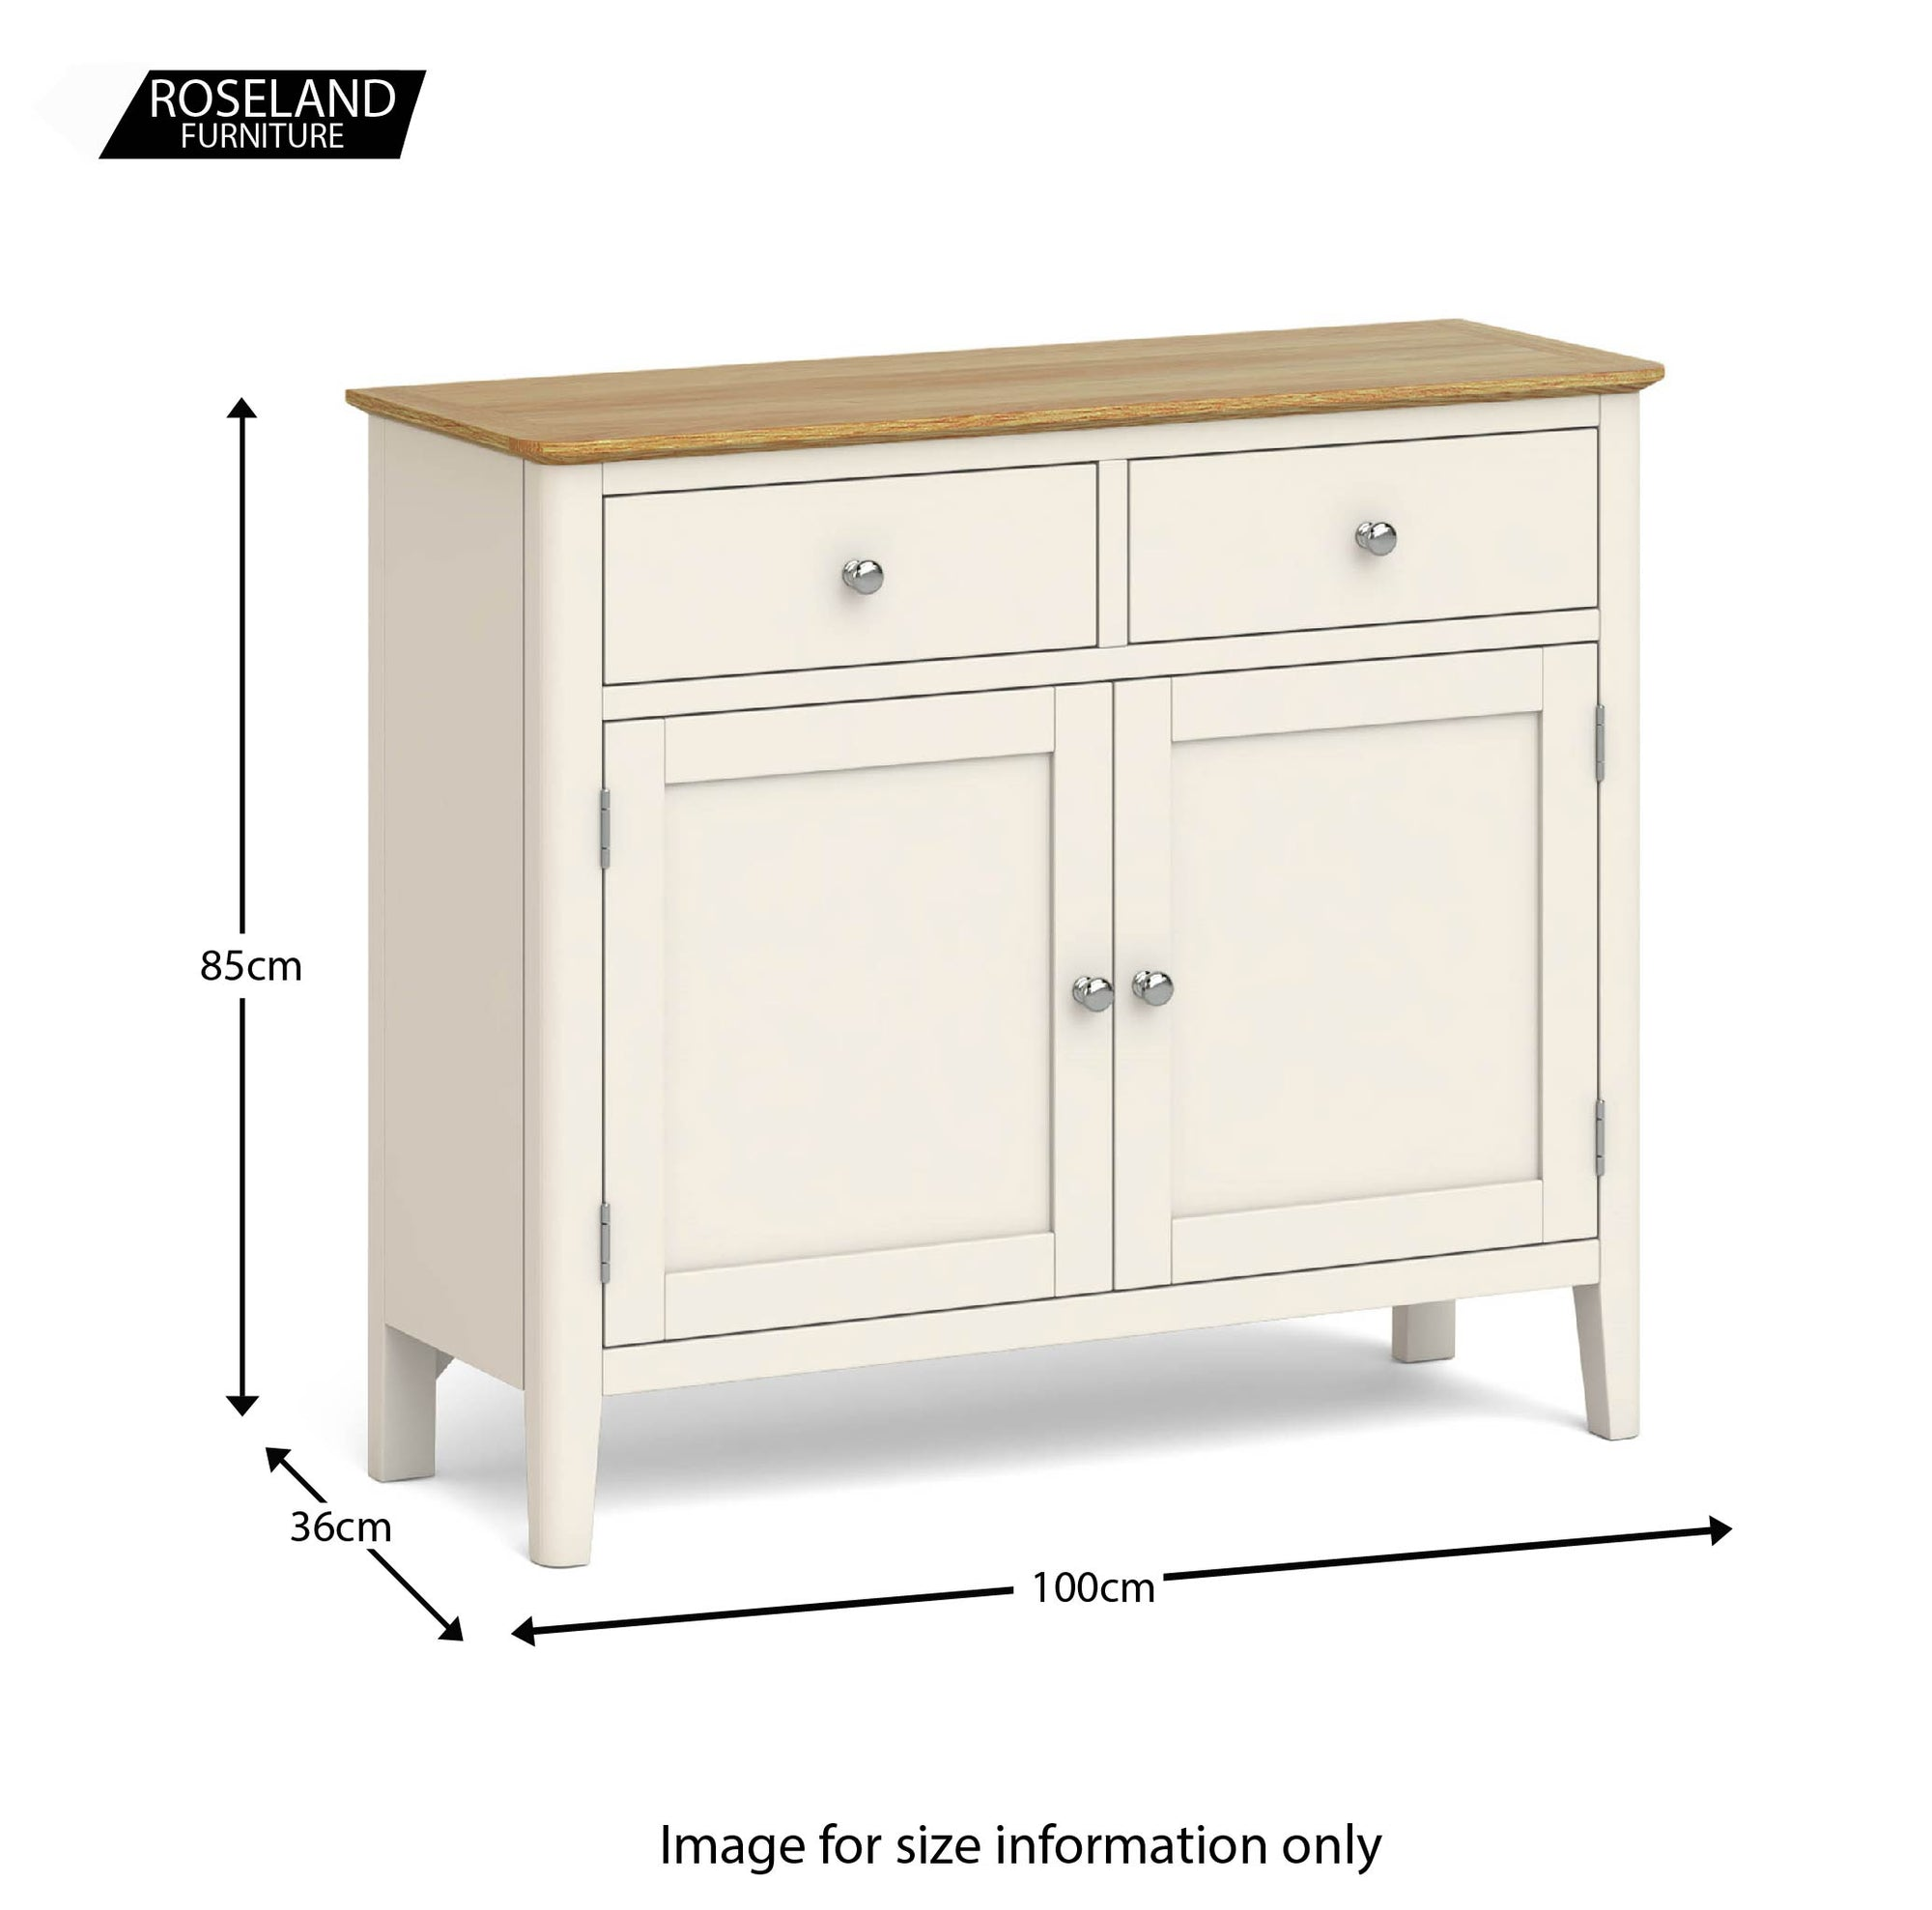 Picture of: Cream And Oak Small Sideboard Roseland Furniture